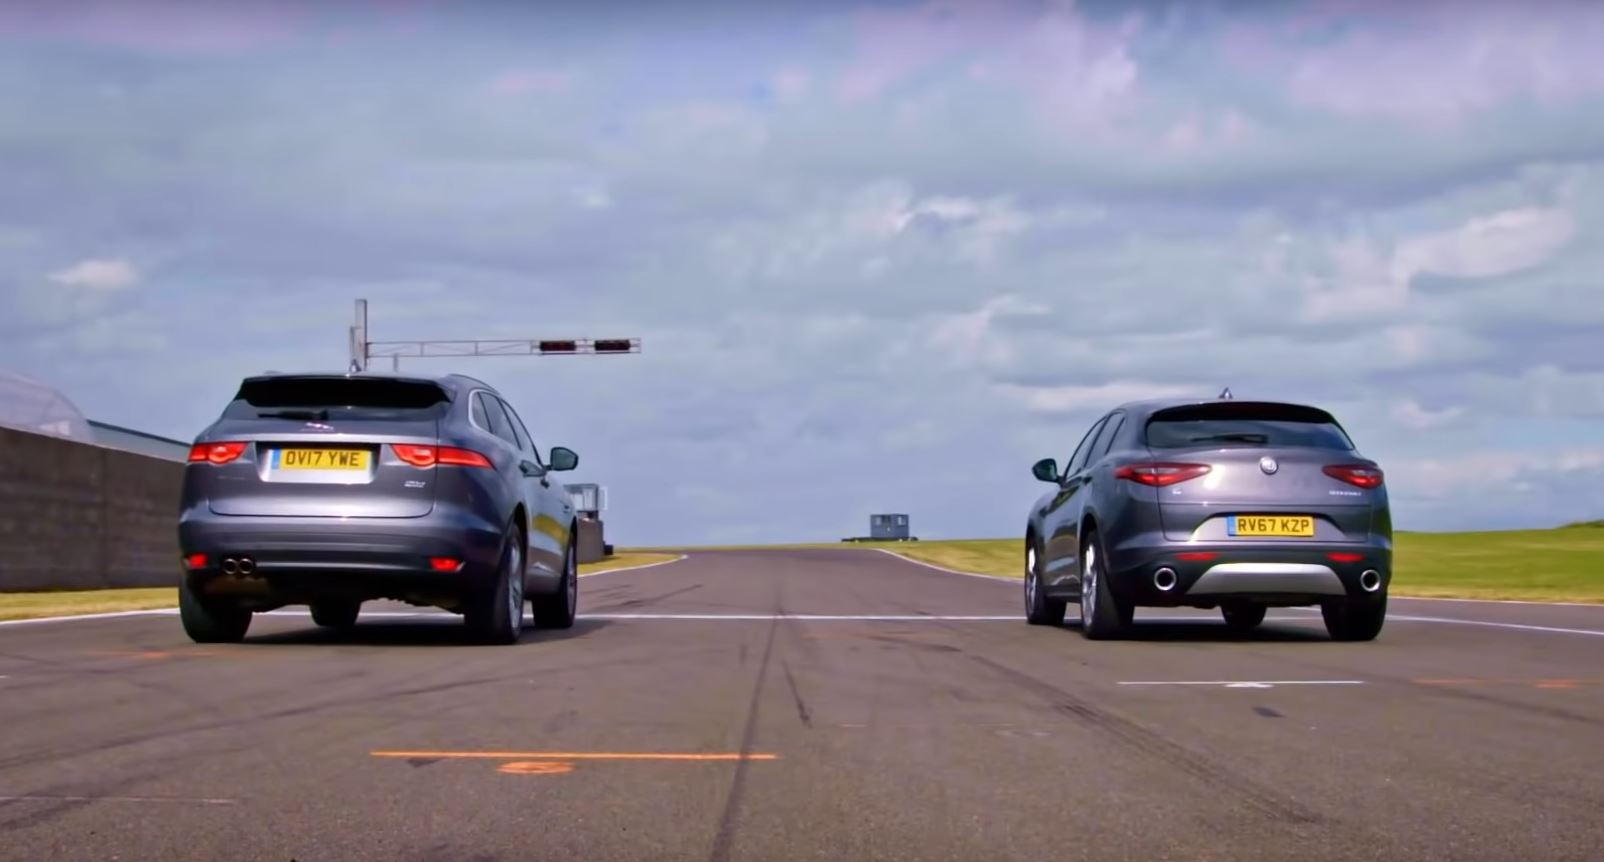 fifth gear compares jaguar f-pace and alfa romeo stelvio on the